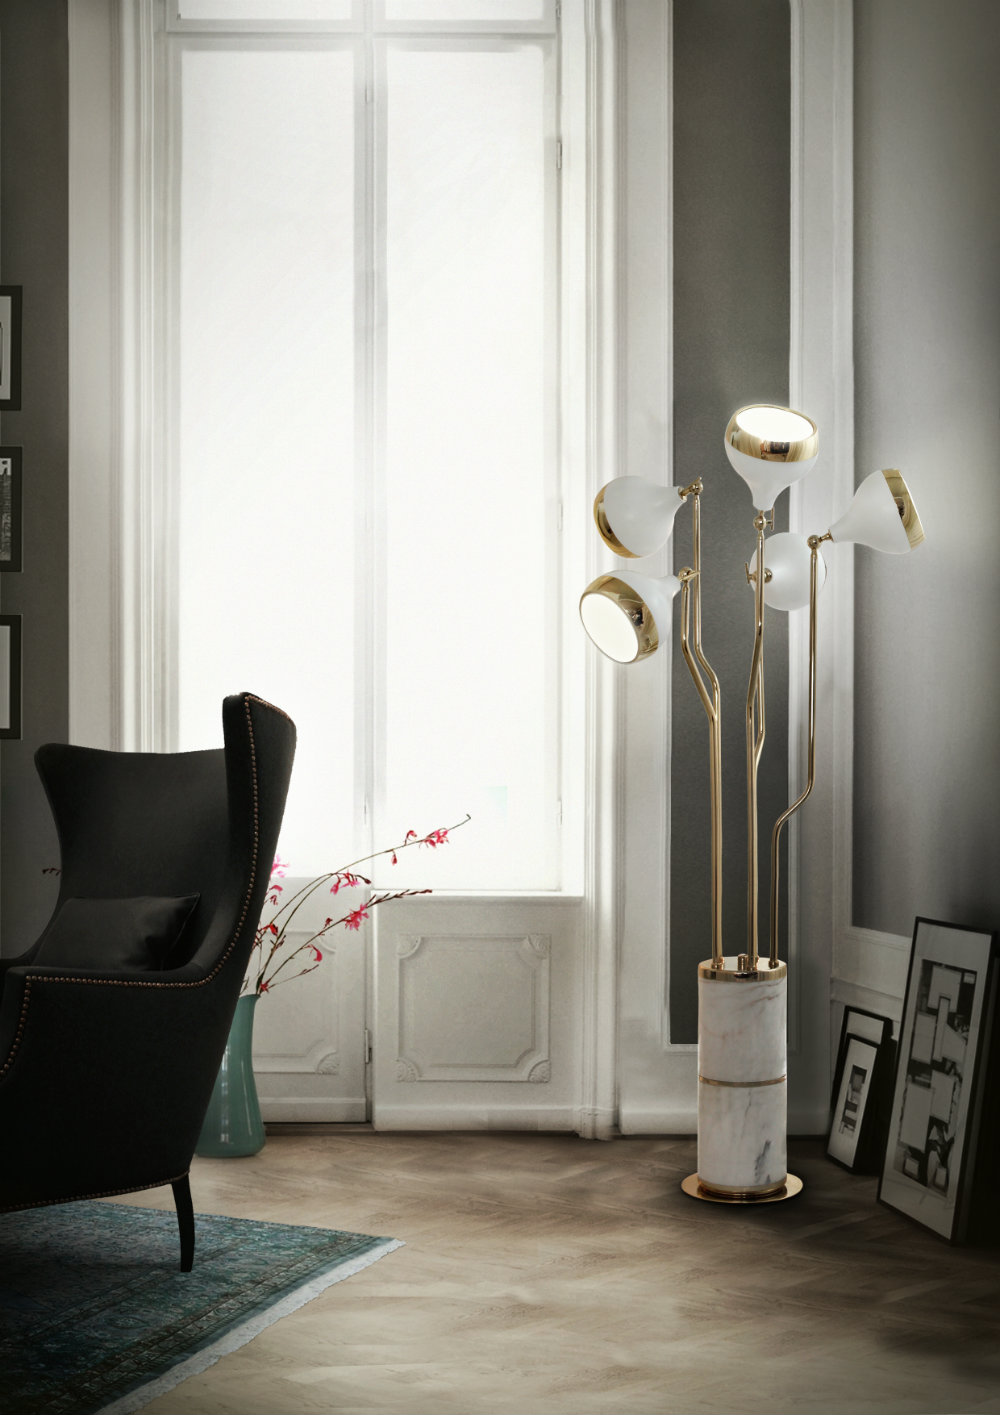 Bright Ideas The Perfect Vintage Floor Lamp for Your Home Decor 1  Bright Ideas: The Perfect Vintage Floor Lamp for Your Home Decor Bright Ideas The Perfect Vintage Floor Lamp for Your Home Decor 1